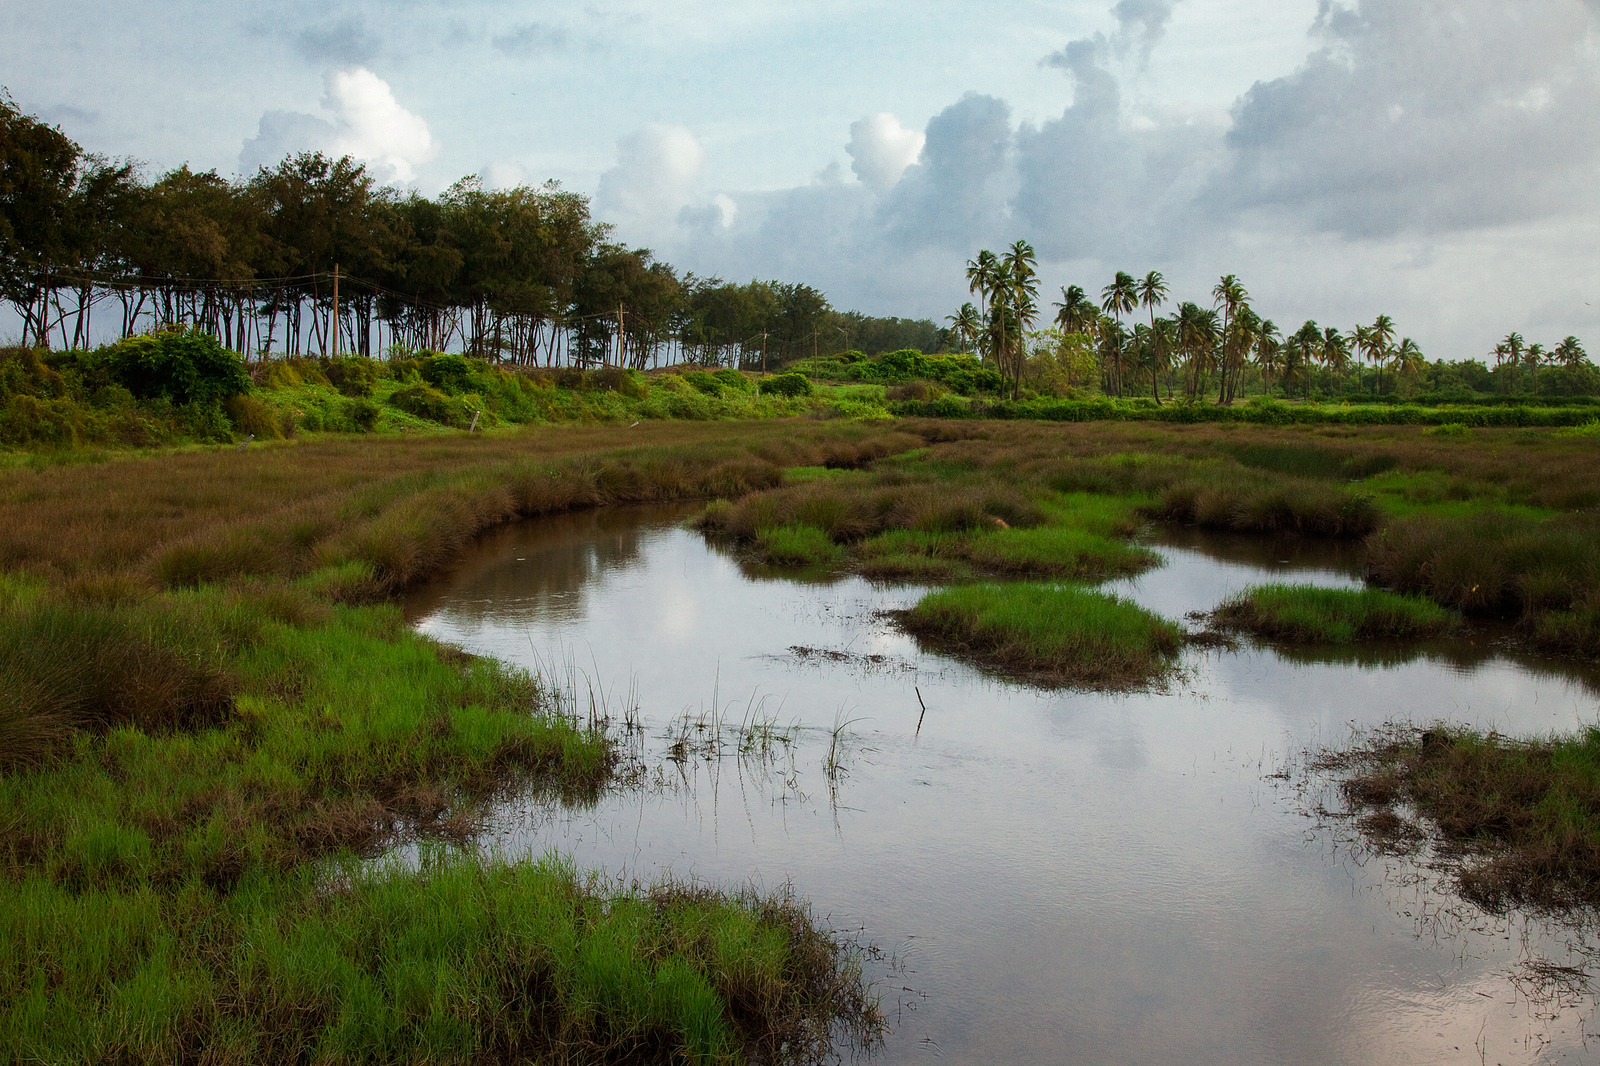 India's Haphazard Quality Monitoring Strategies are Letting Water Pollution Get Worse